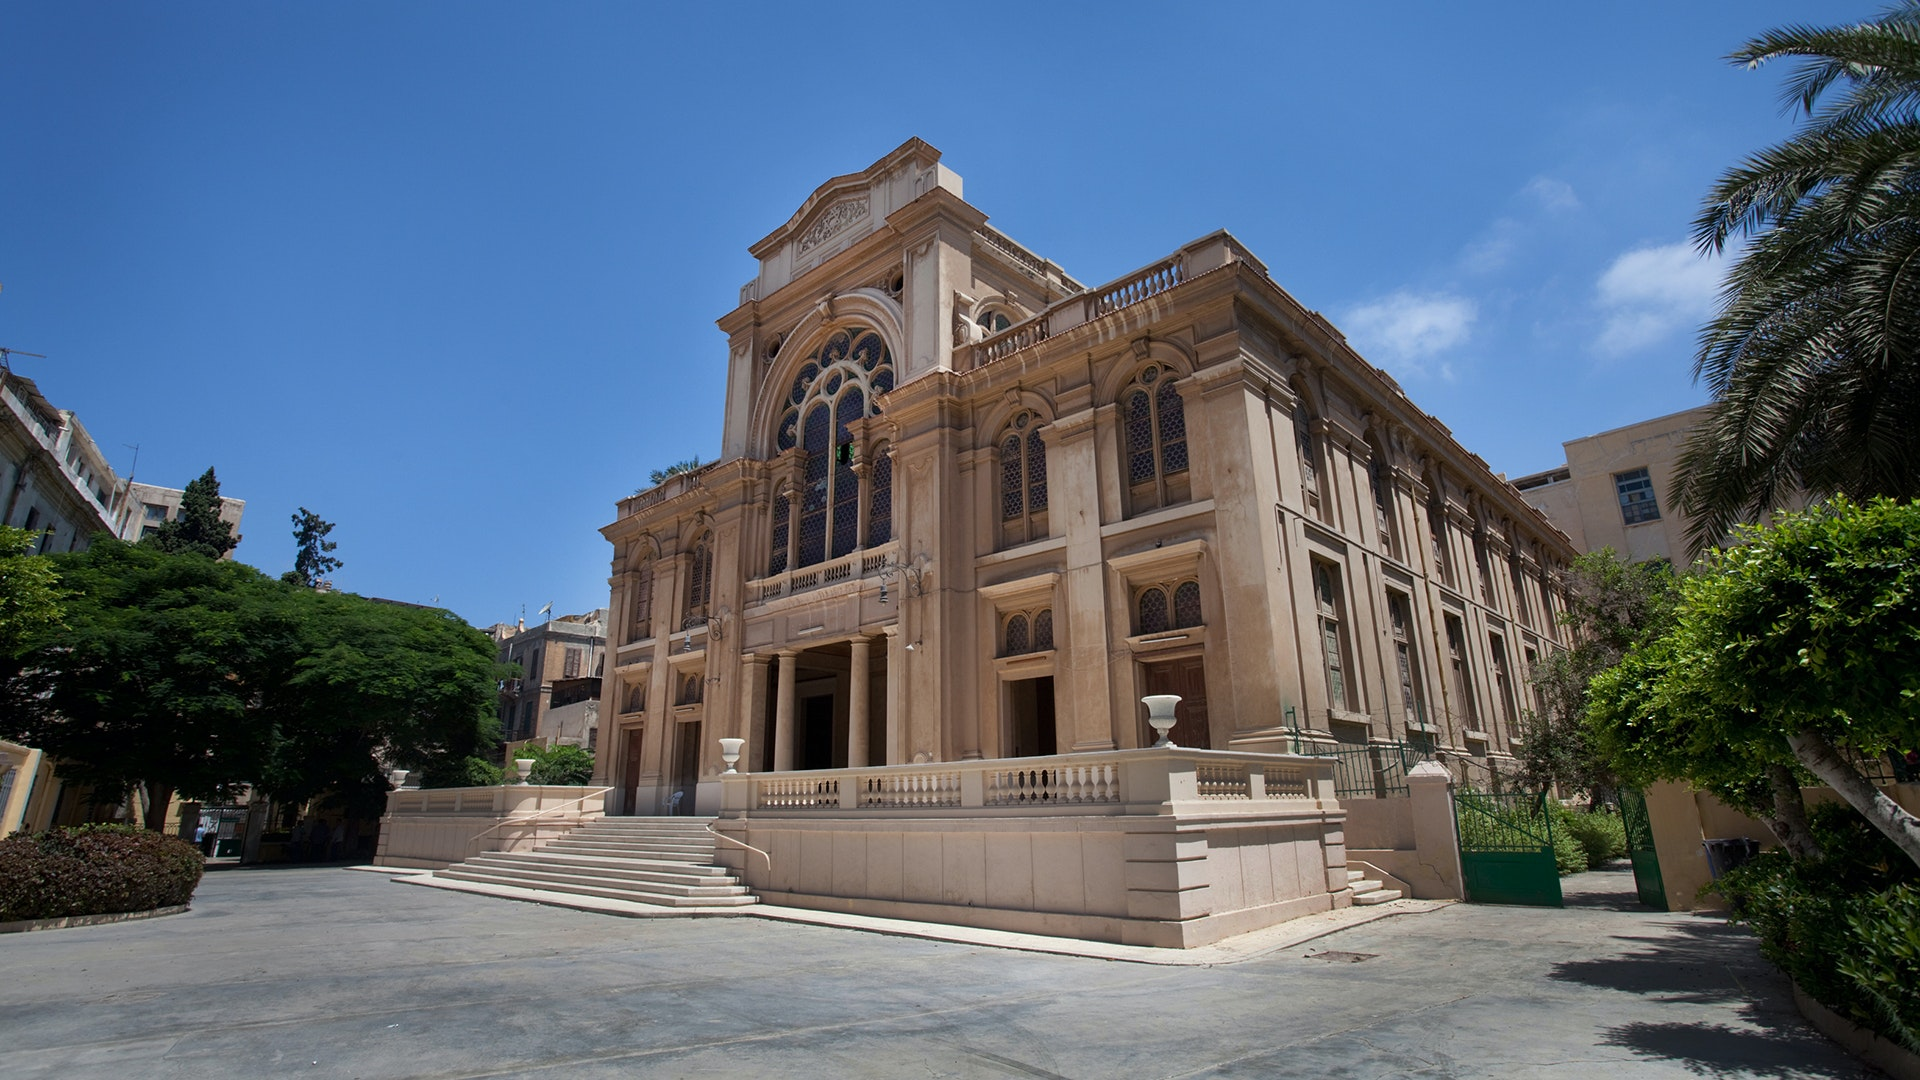 In Egypt, Alexandria's Eliyahu Hanavi Synagogue made the WMF list for 2017.